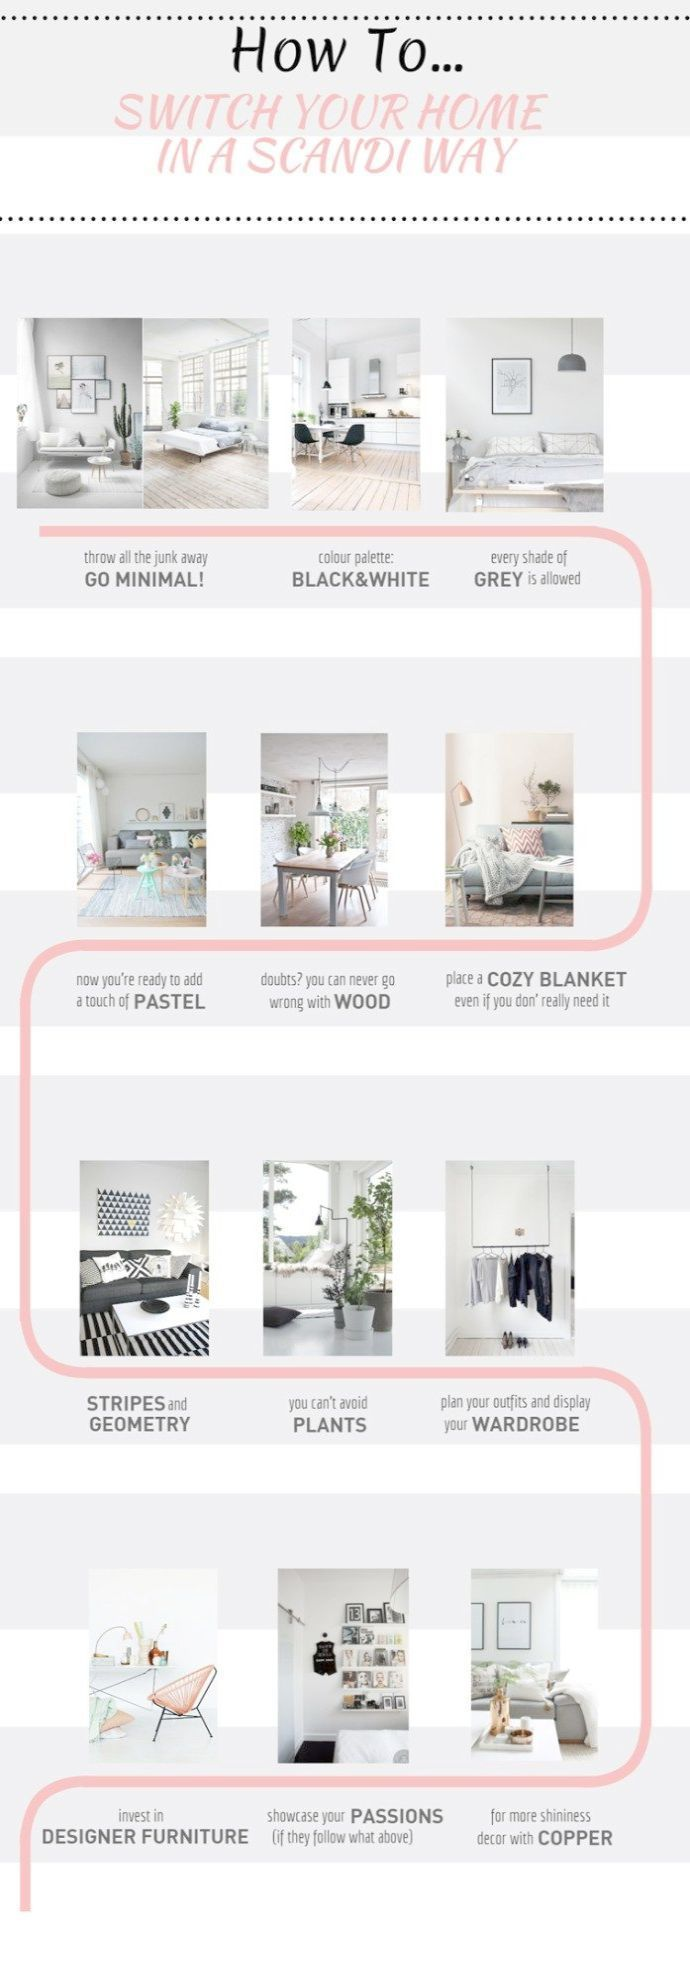 Scandinavian Infographic How To Decorate A Room Scandi Style Living Room Scandinavian Scandinavian Interior Design Scandinavian Interior